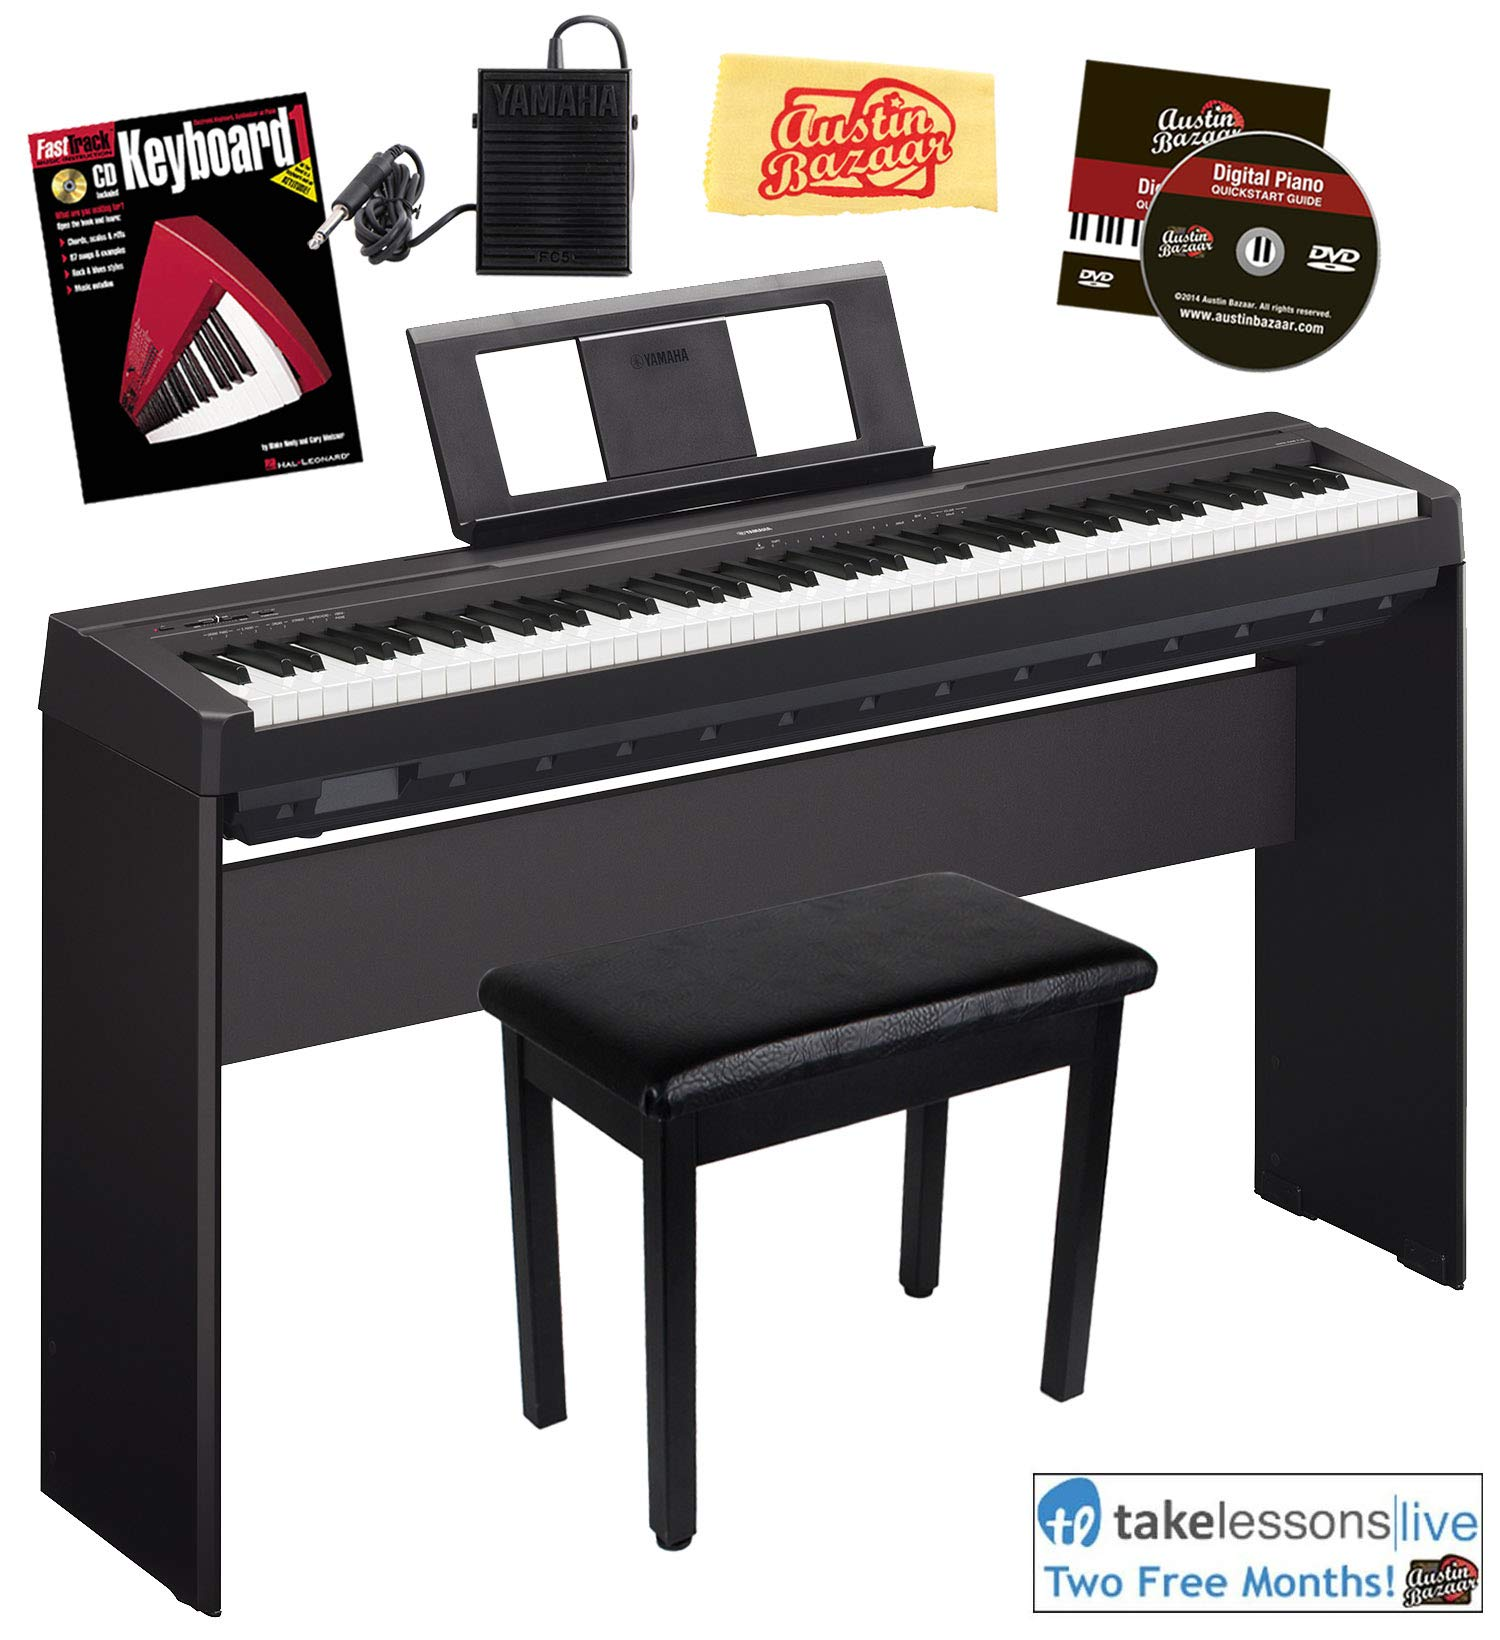 Yamaha P-45 Digital Piano - Black Bundle with Yamaha L-85 Stand, Furniture Bench, Instructional Book, Austin Bazaar Instructional DVD, and Polishing Cloth by YAMAHA